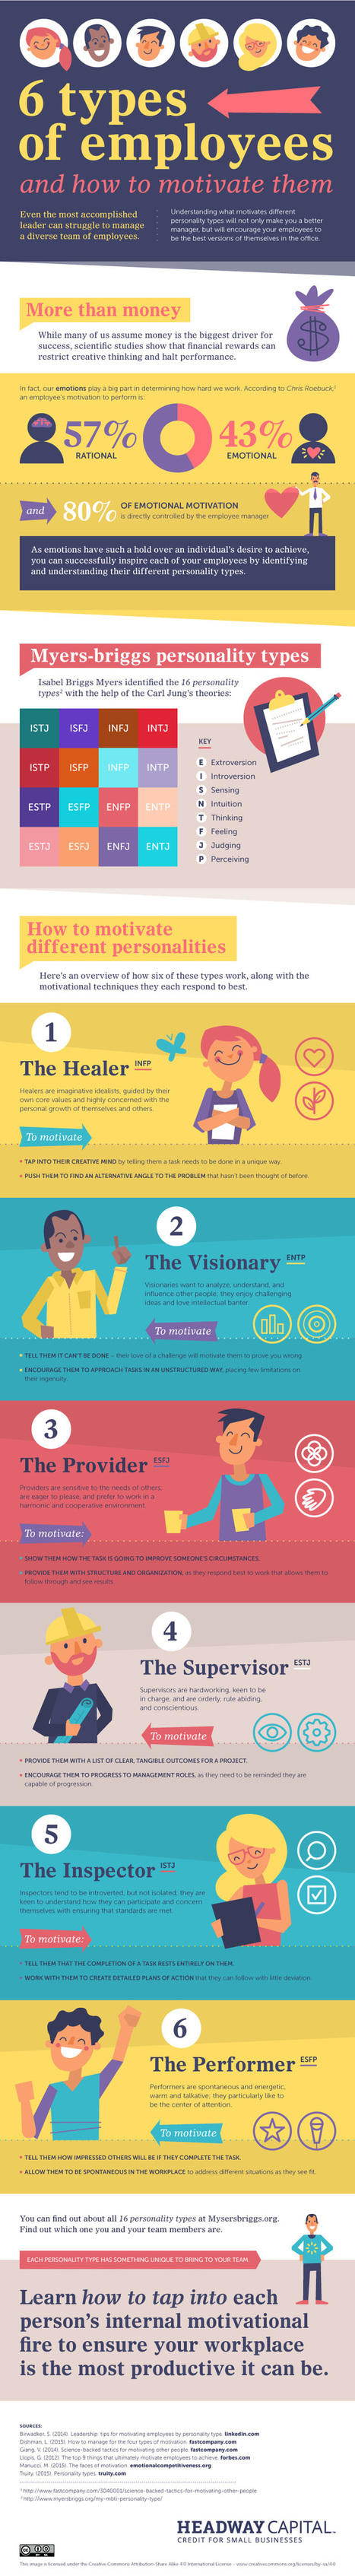 6 Types of Employees and How to Motivate Them [Infographic] | Management - Leadership | Scoop.it